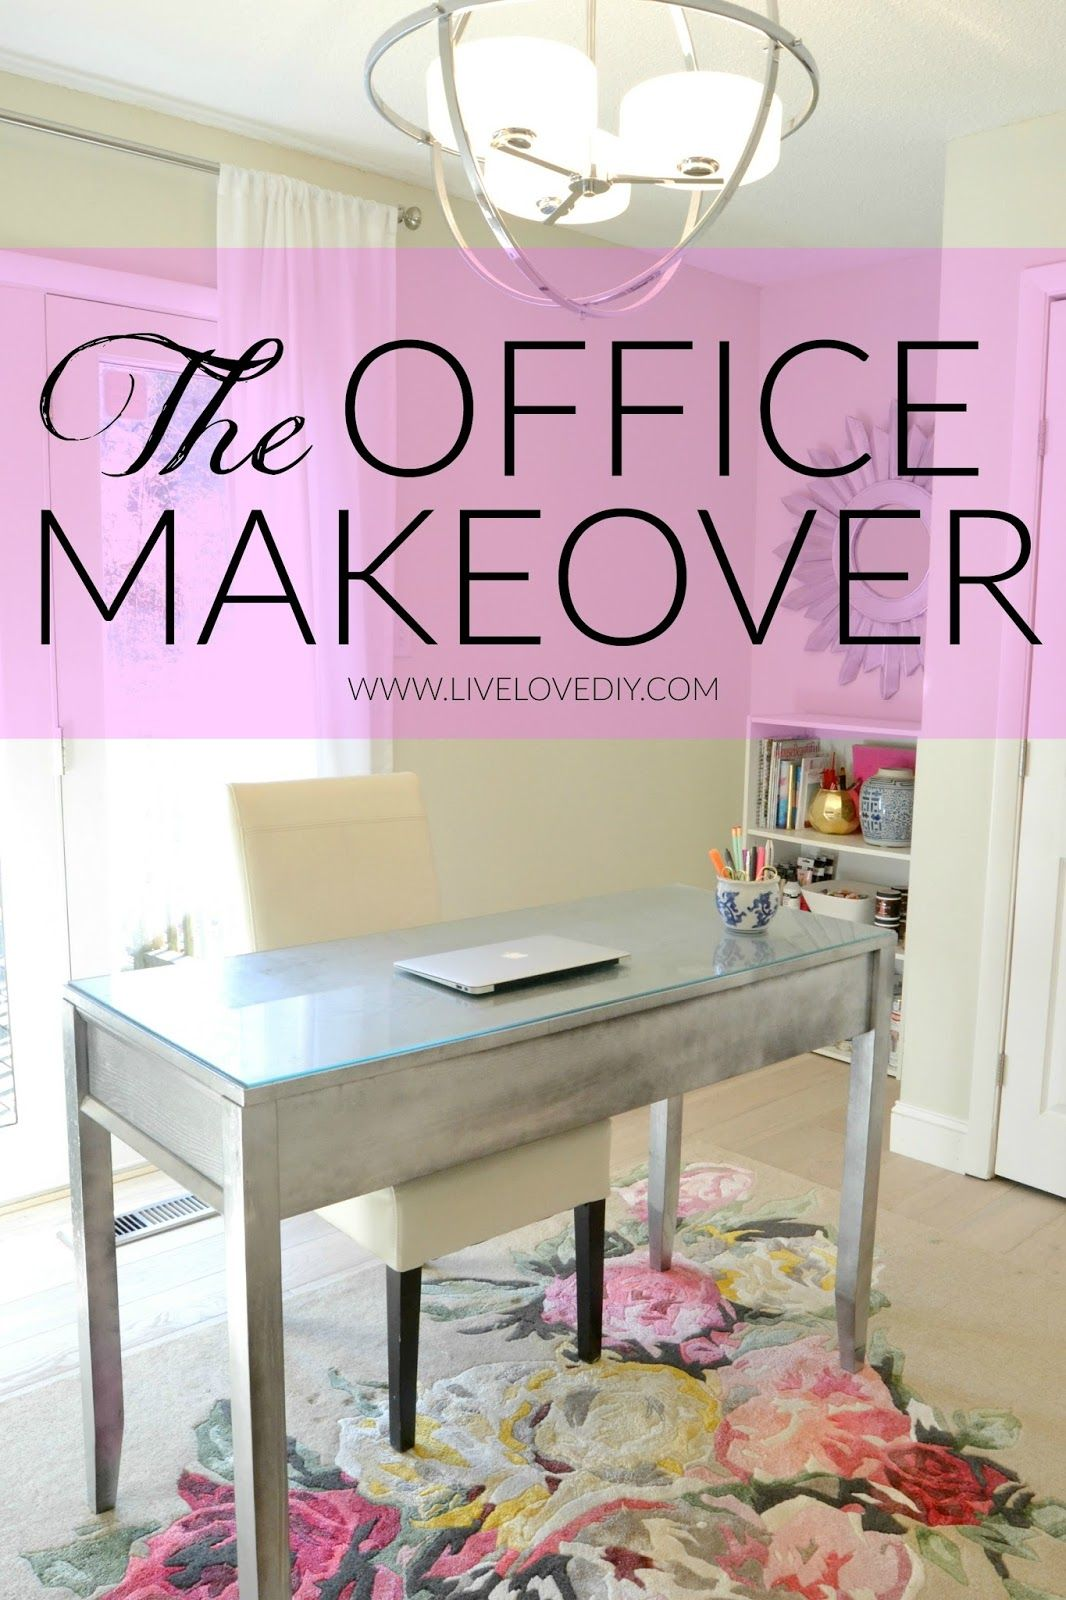 Incroyable Home Office Decorating Ideas: My Latest Office Makeover!